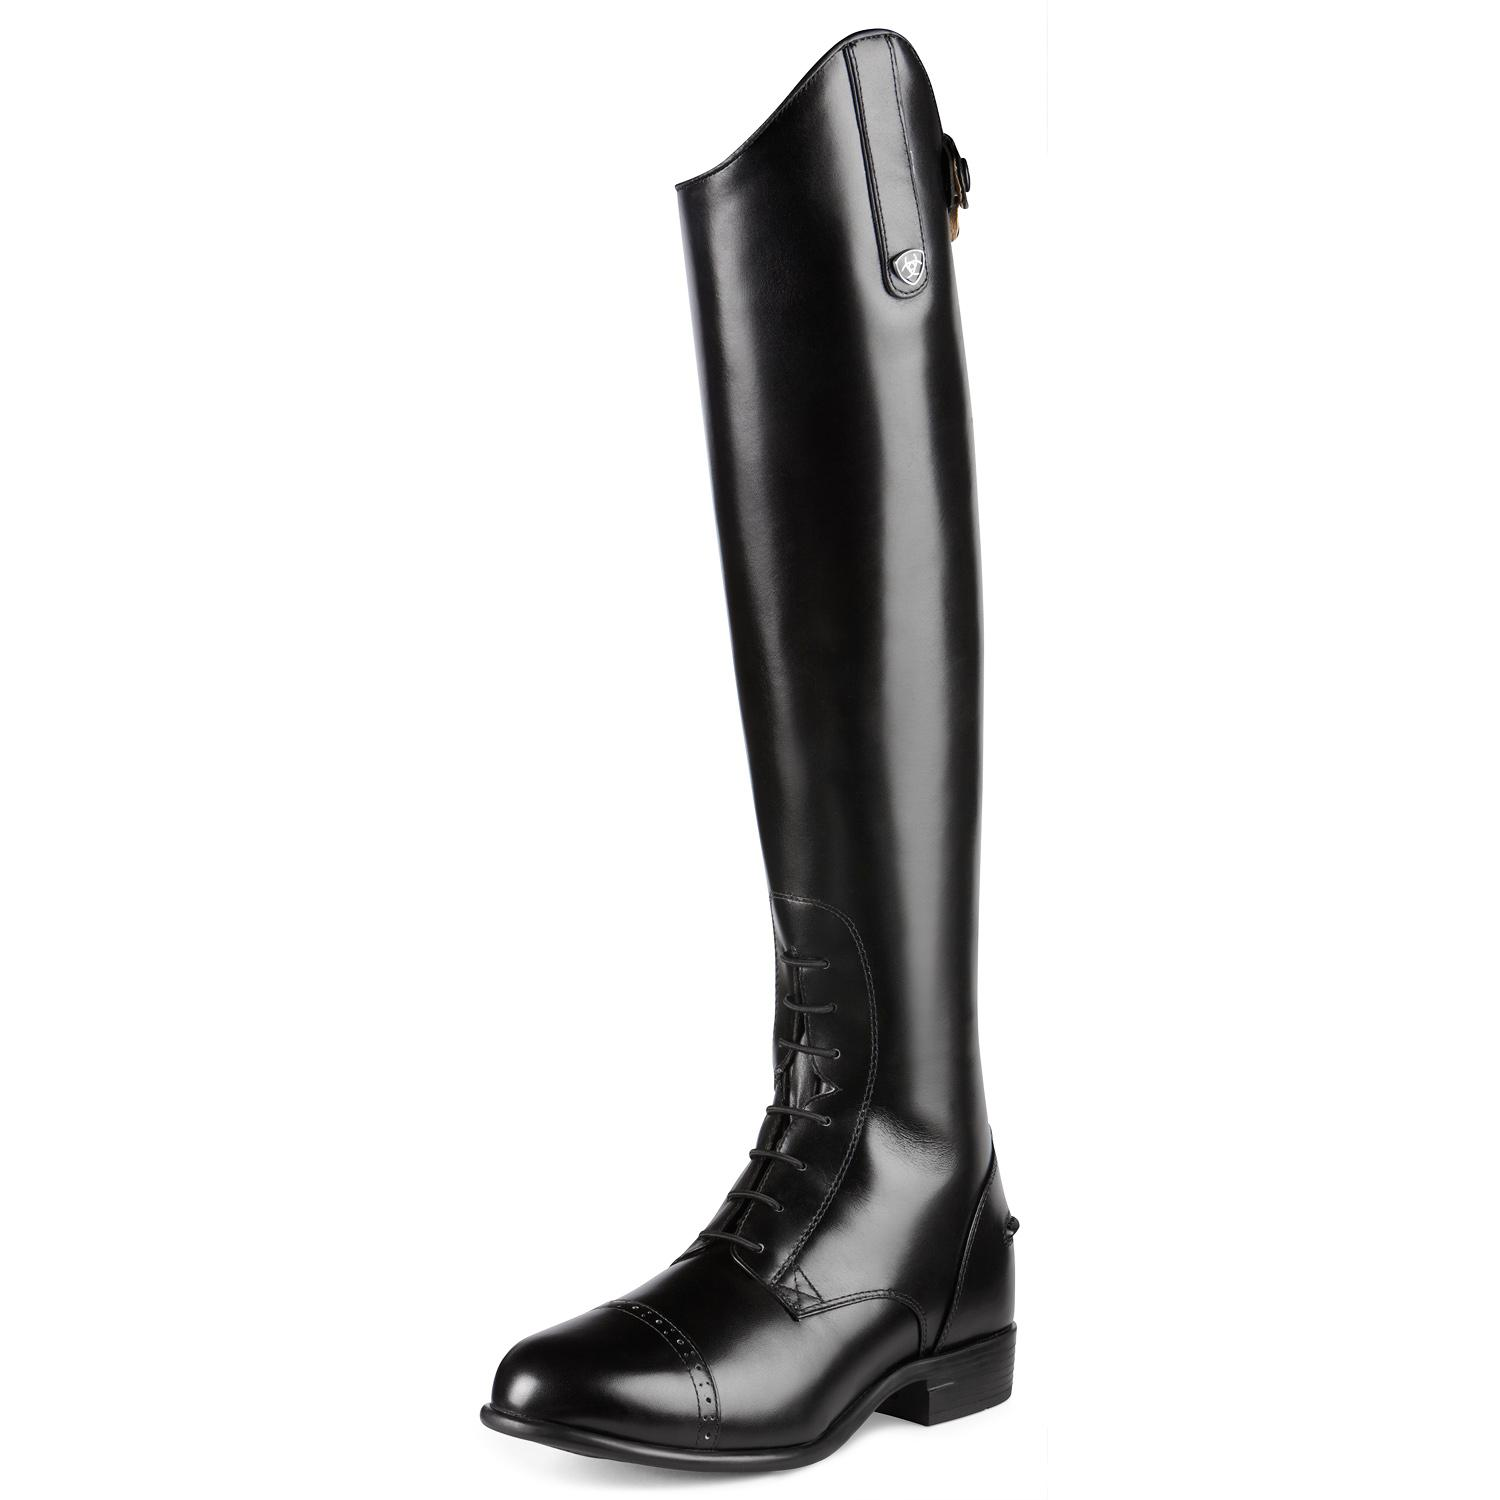 We offer a great choice of leather and synthetic long riding boots, perfect for competition, or everyday wear at the stables. Top brands we stock include Toggi, .